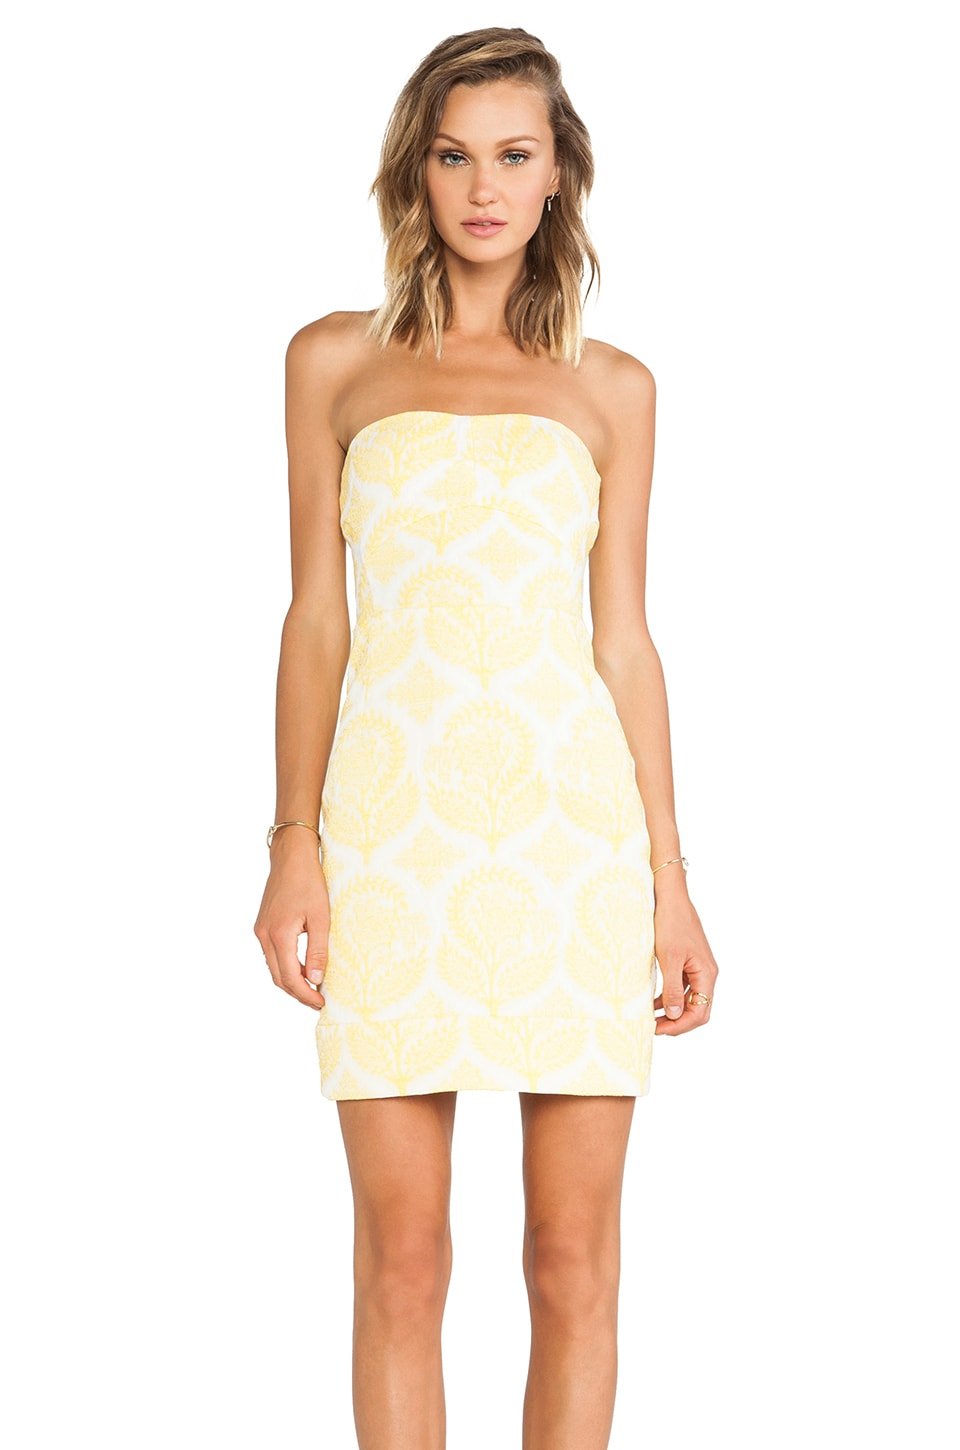 Diane von Furstenberg Garland Two Floral Stamp Dress in Canary Yellow & White